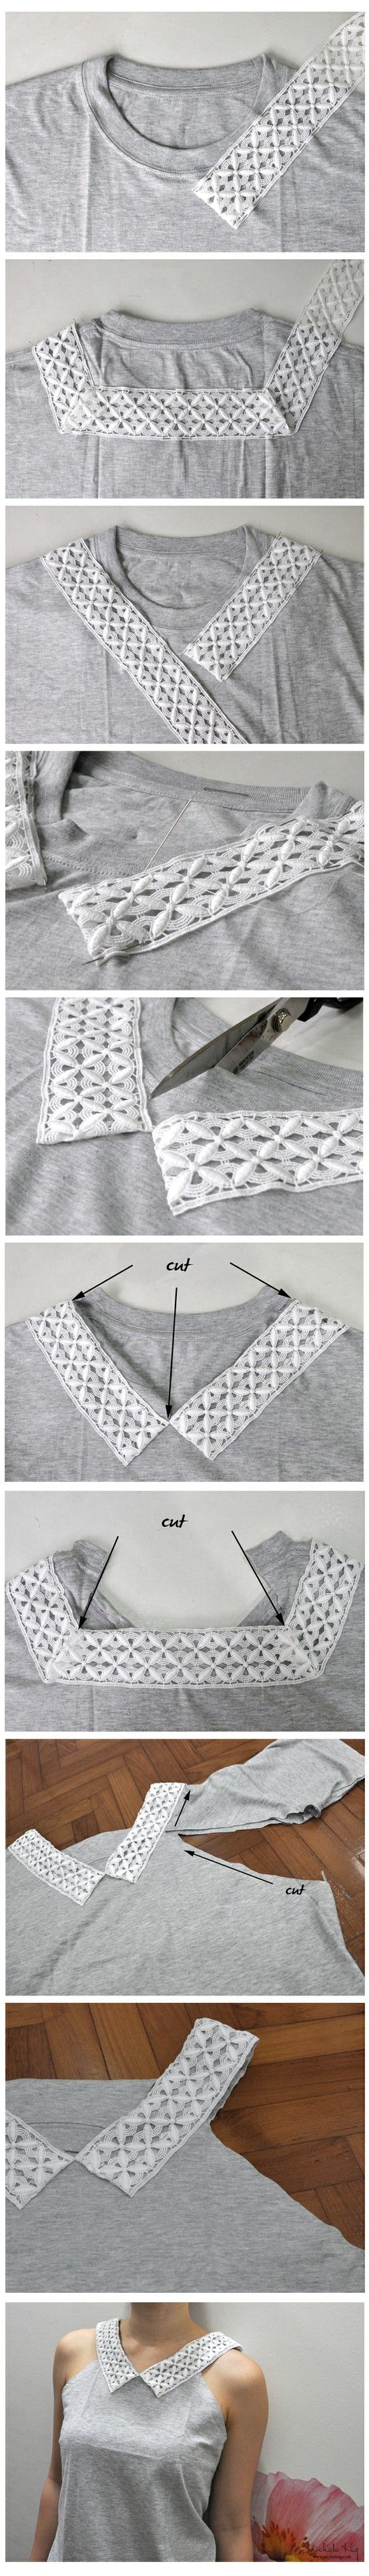 Super Cool Re-Fashioned T-Shirt